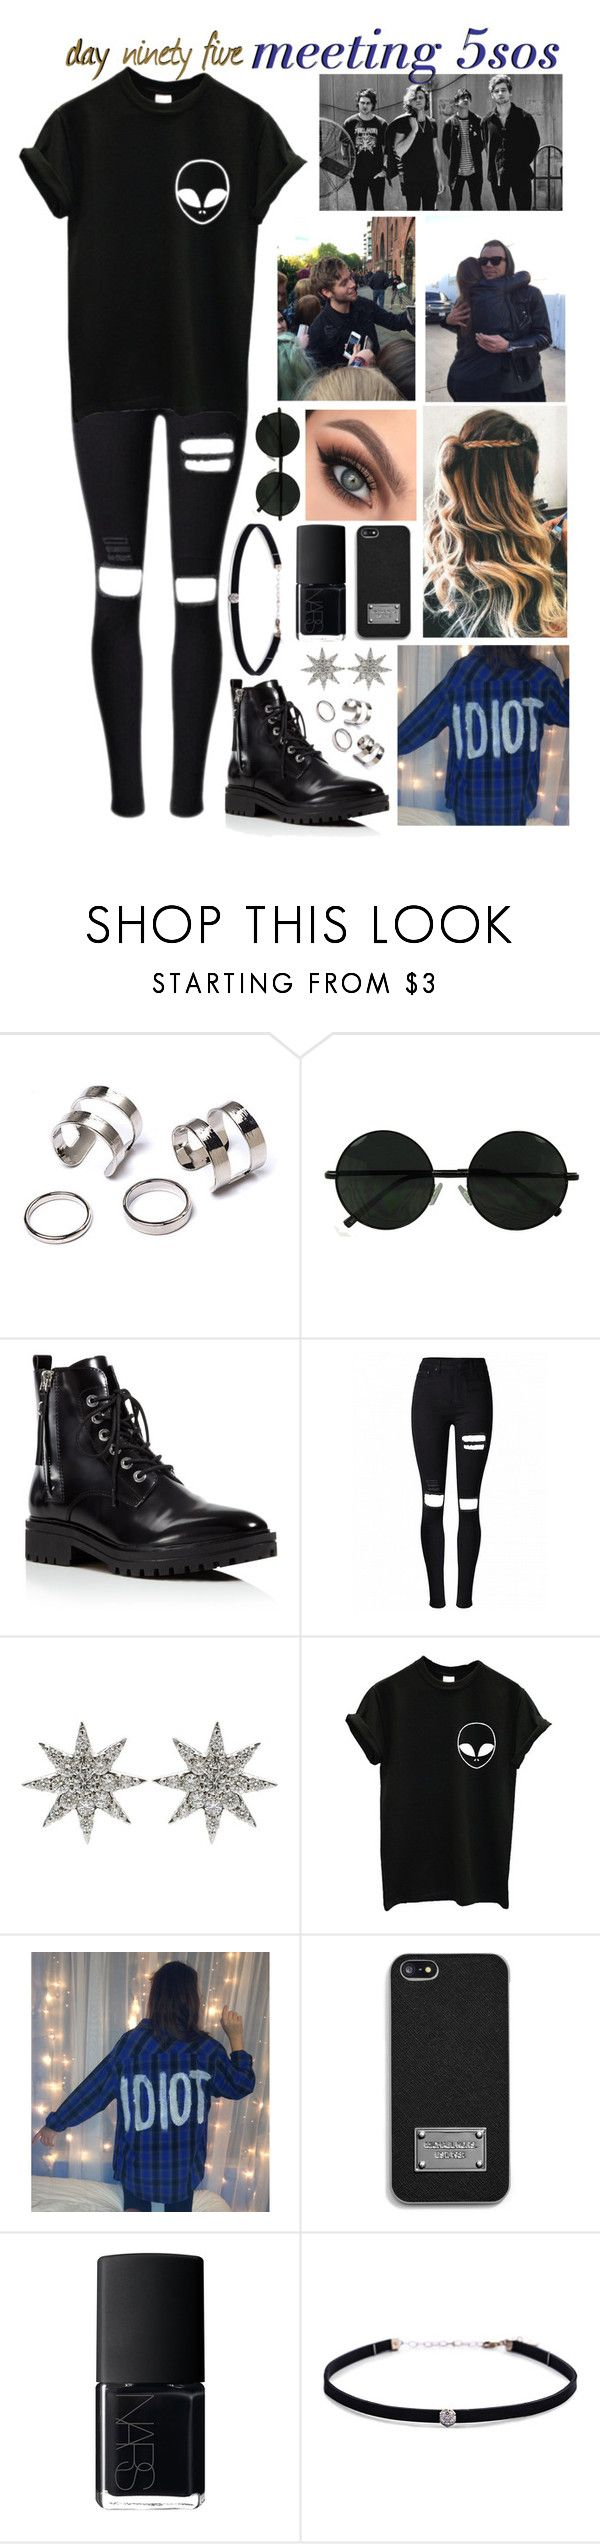 """""""day ninety five, meeting 5sos"""" by roxouu ❤ liked on Polyvore featuring Anastasia Beverly Hills, Kendall + Kylie, Bee Goddess, MICHAEL Michael Kors, NARS Cosmetics and Carbon & Hyde"""